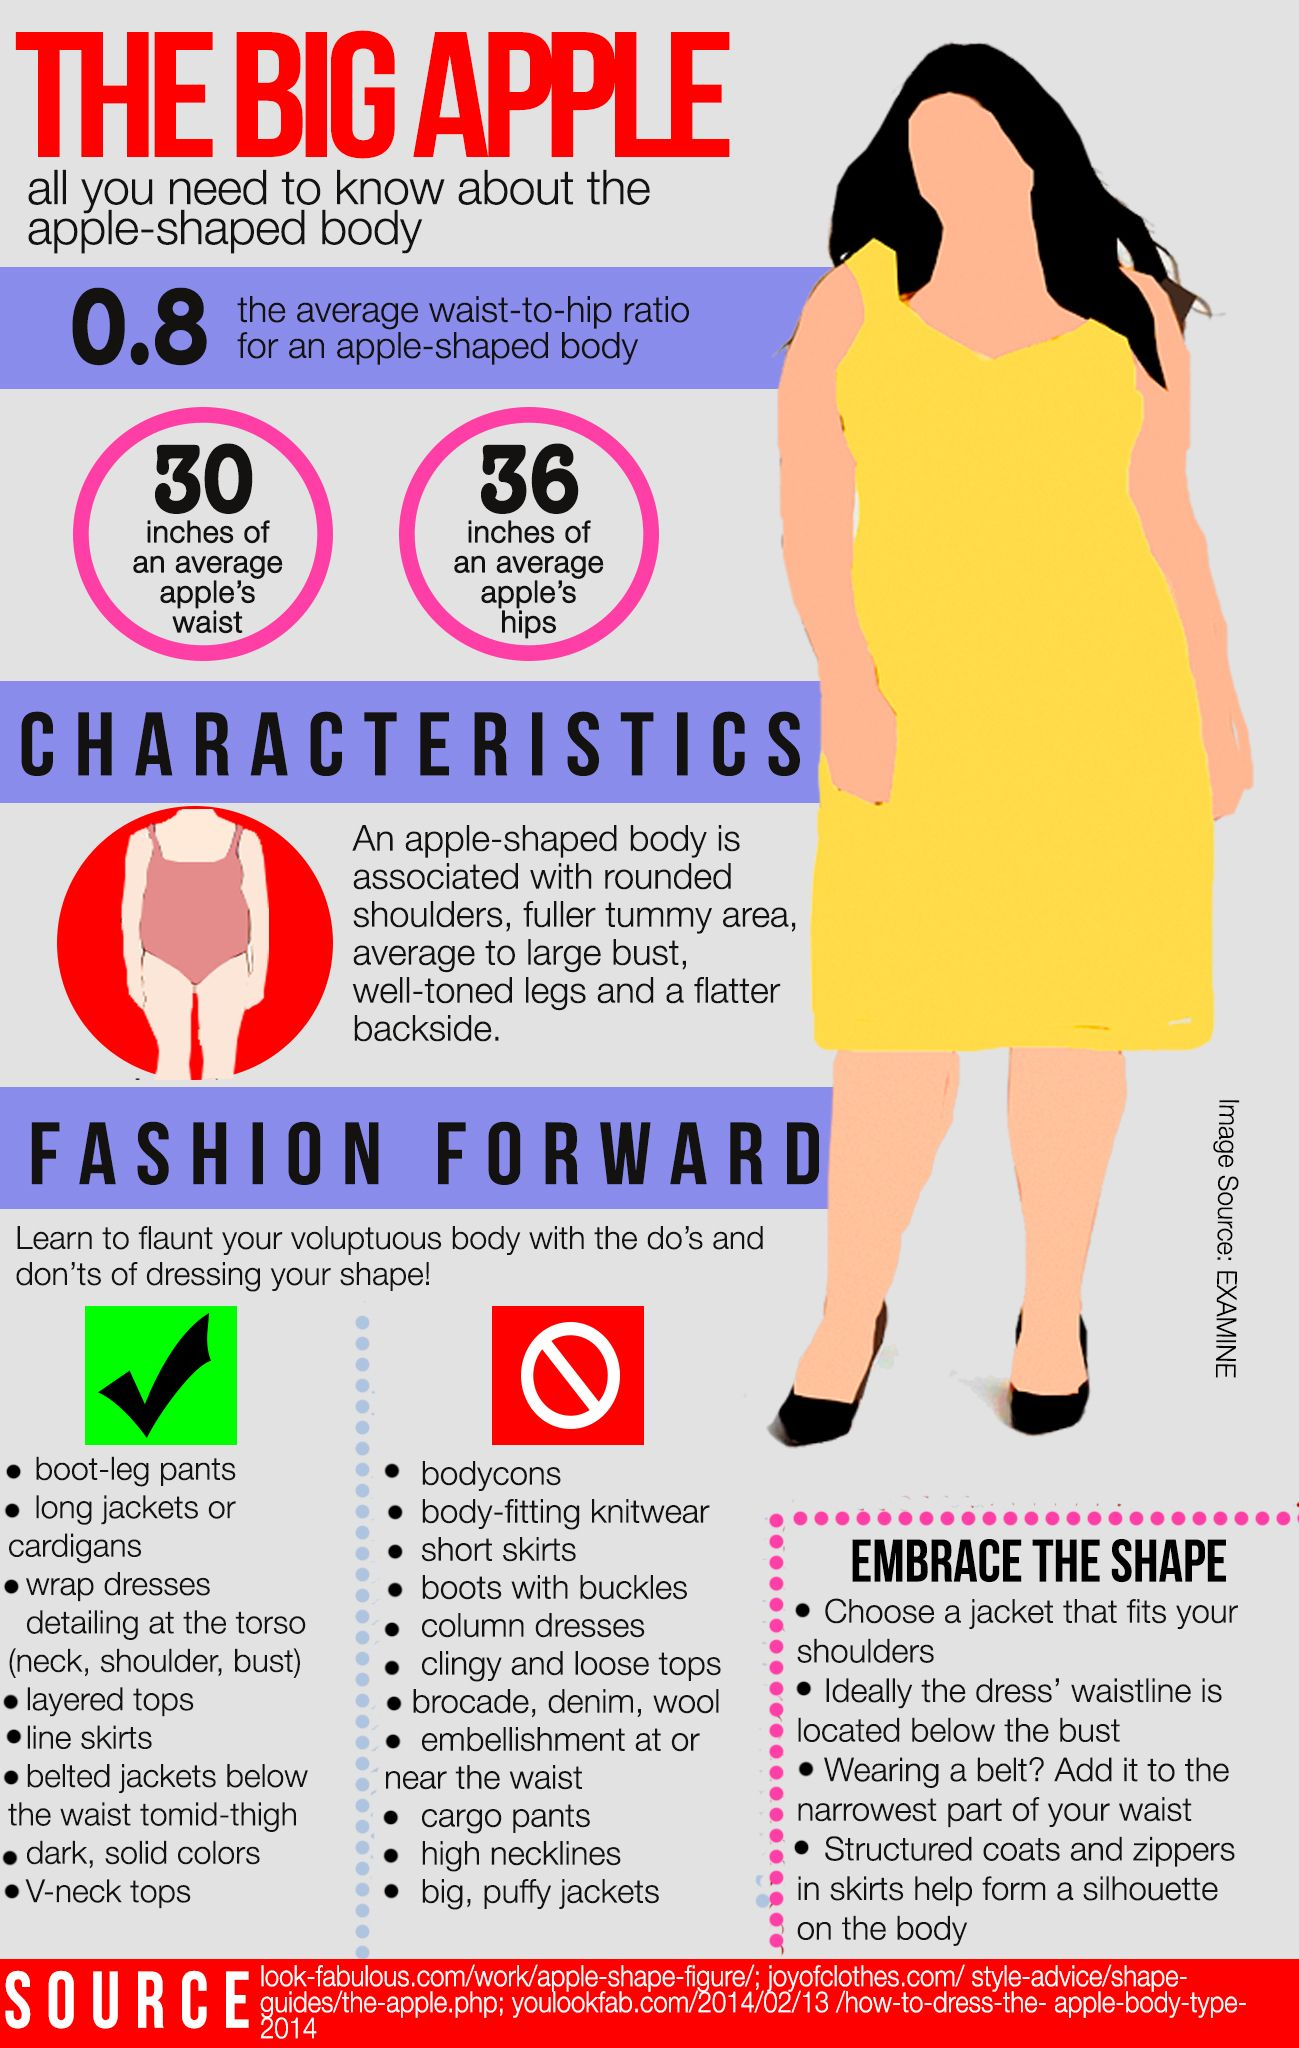 Styling Tips In Keeping With The Current Fashion Trends In: Pin By PicVpic.com On Fashion Infographics